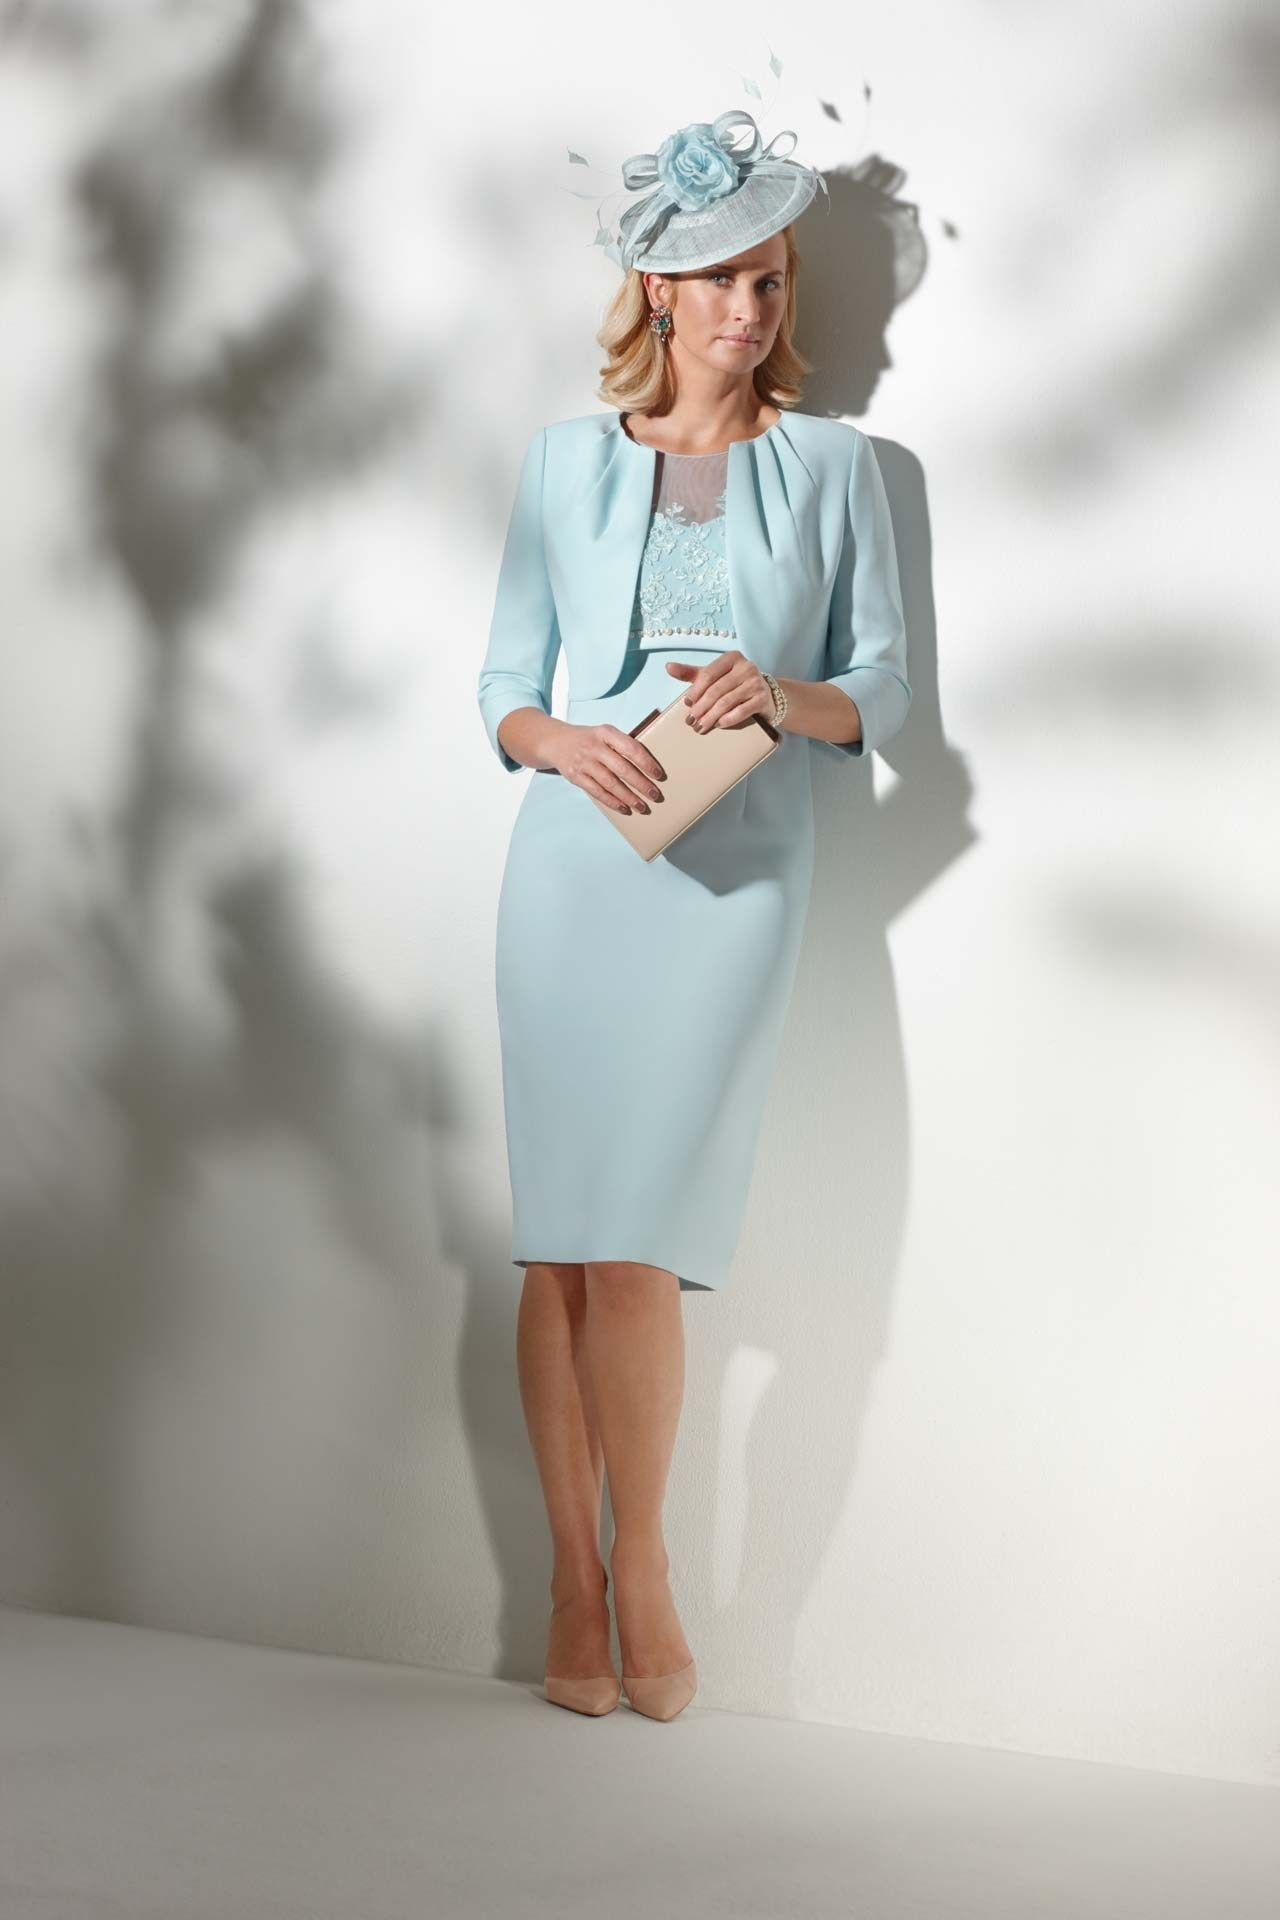 Mother Of The Bride Dresses & Outfits (BridesMagazine.co.uk)   Dress ...